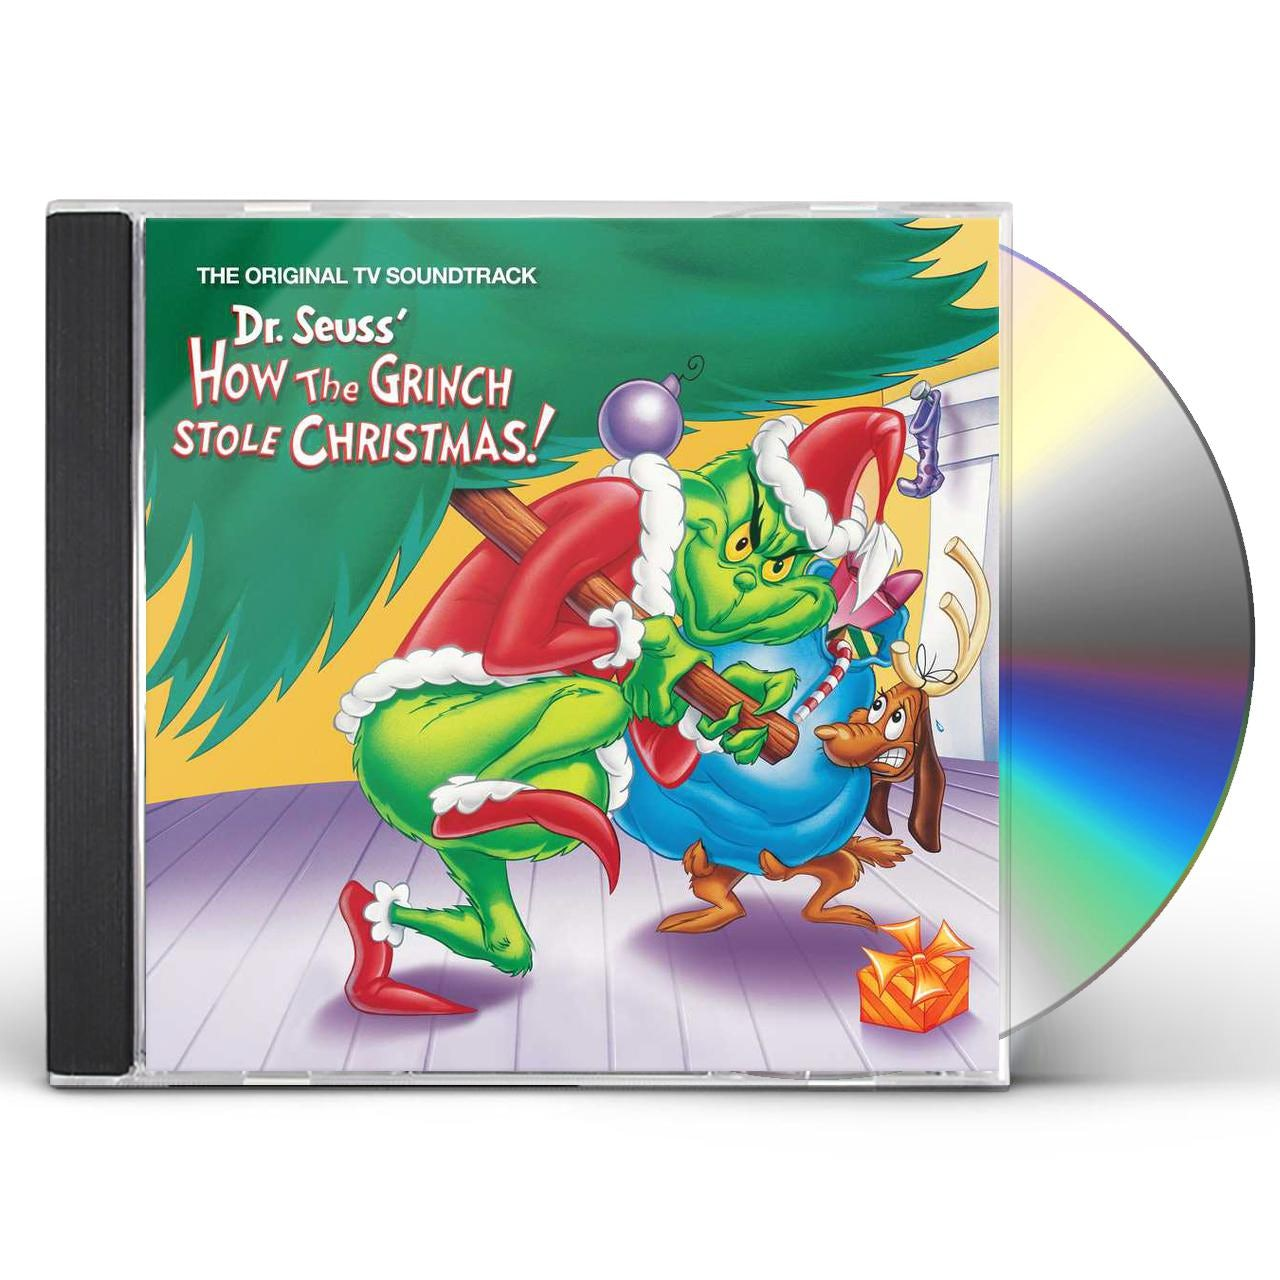 How The Grinch Stole Christmas Cast Animated.Dr Seuss How The Grinch Stole Christmas O S T Cd